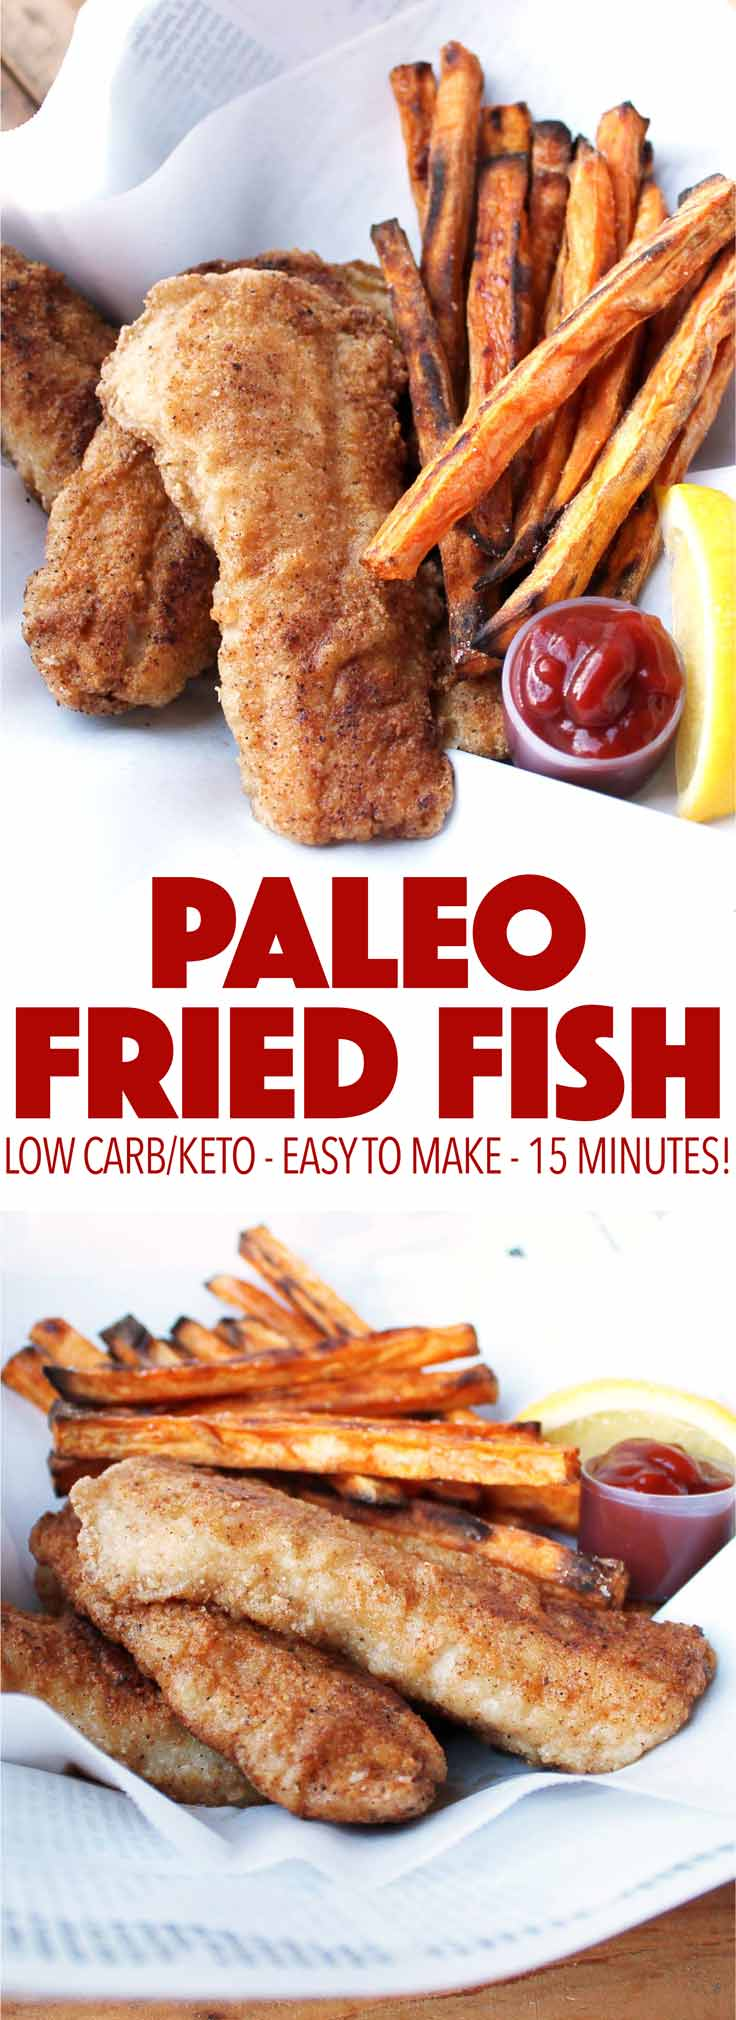 Fried fish made paleo! Easy to make and just as delicious as traditional fried fish! Gluten free, dairy free, low carb, keto.